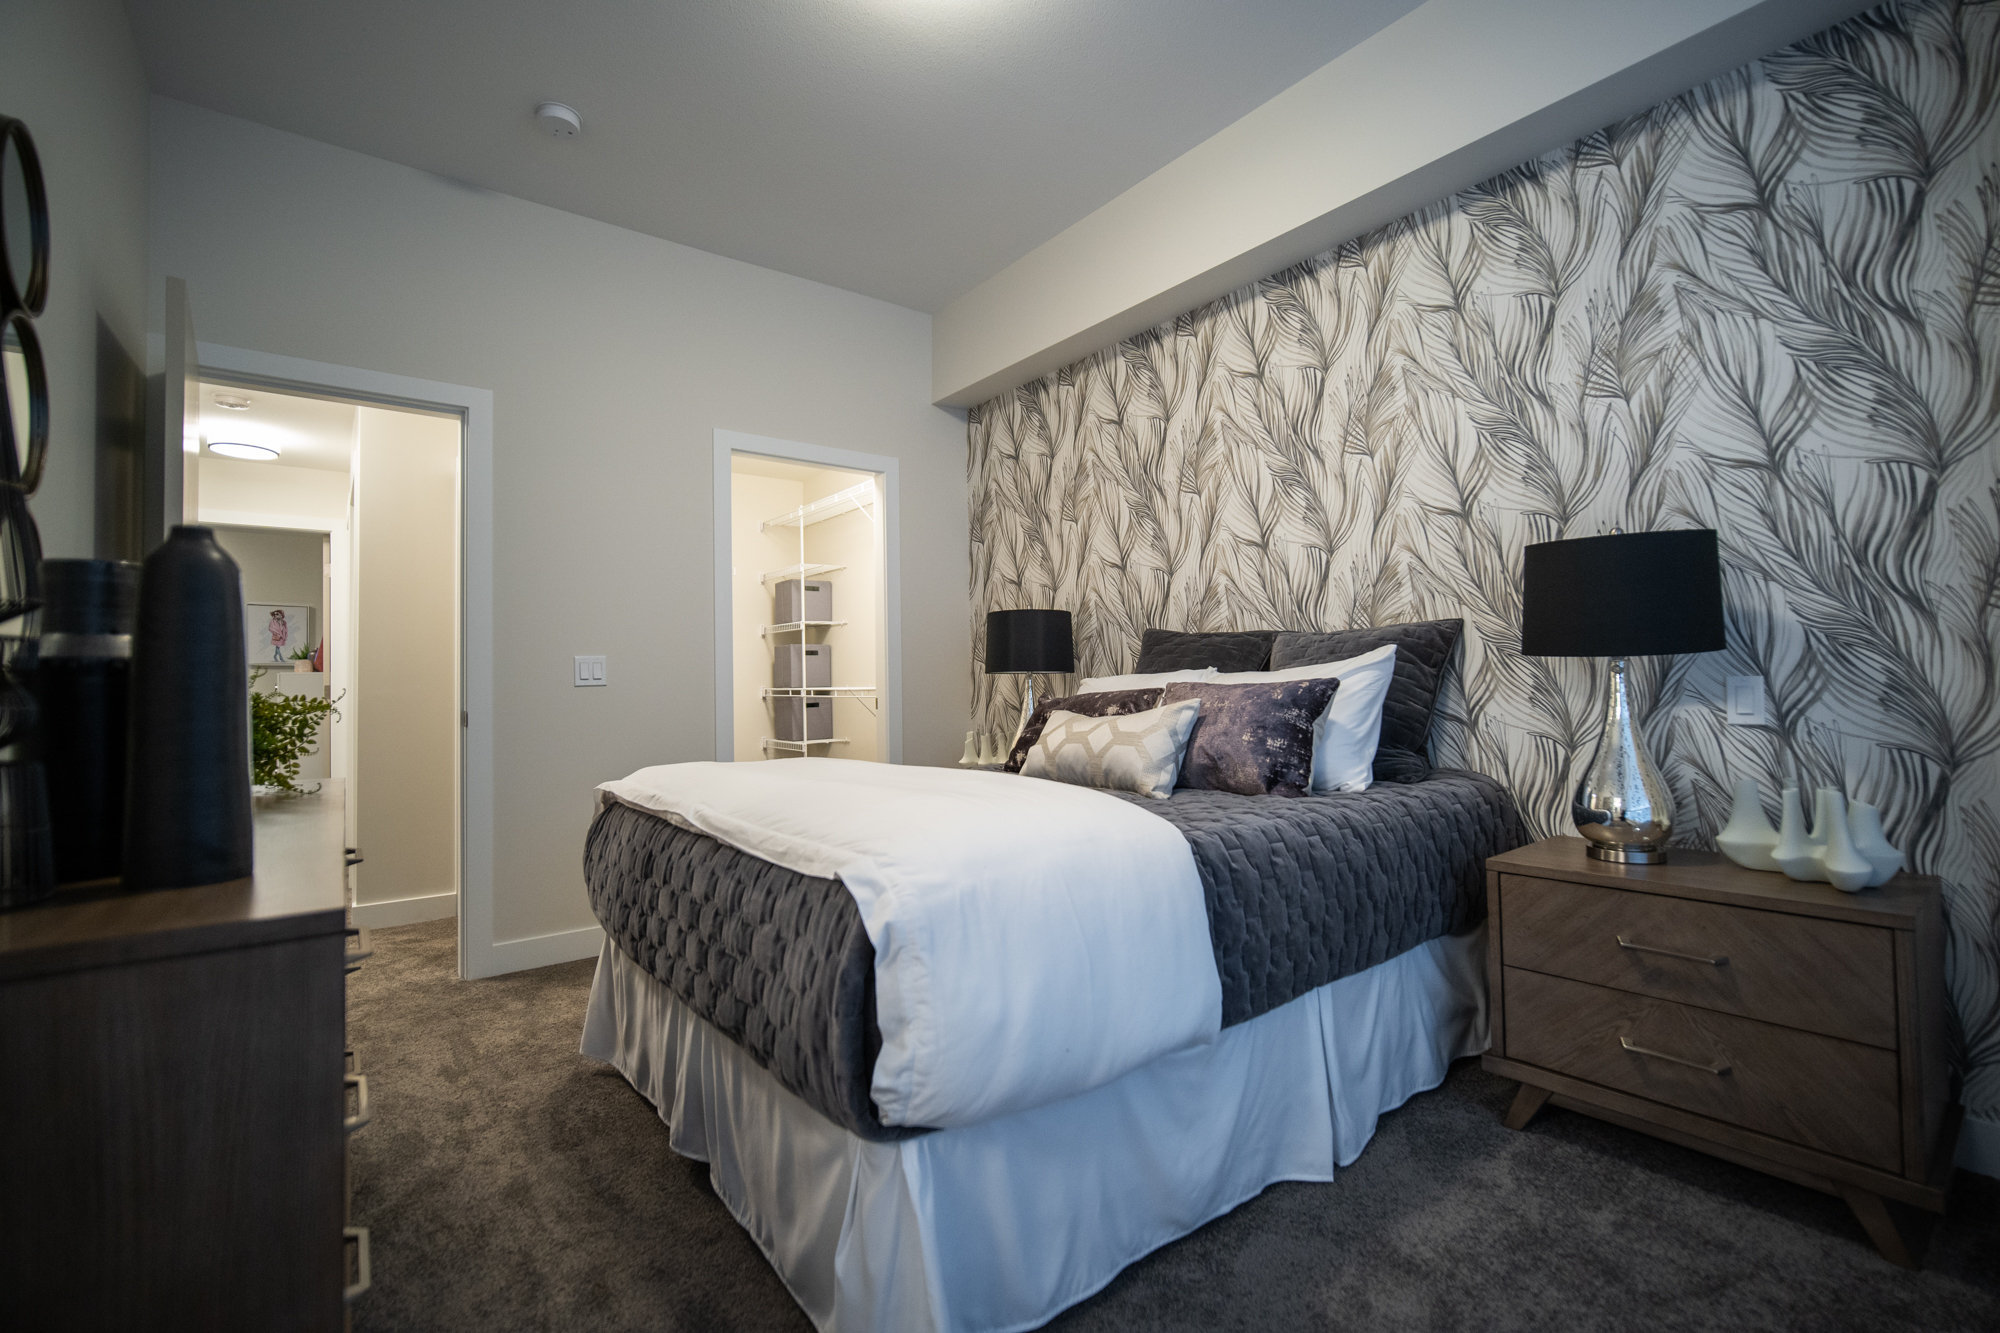 Bedroom - 46150 Thomas Rd, Chilliwack, BC V2R 6B3, Canada!